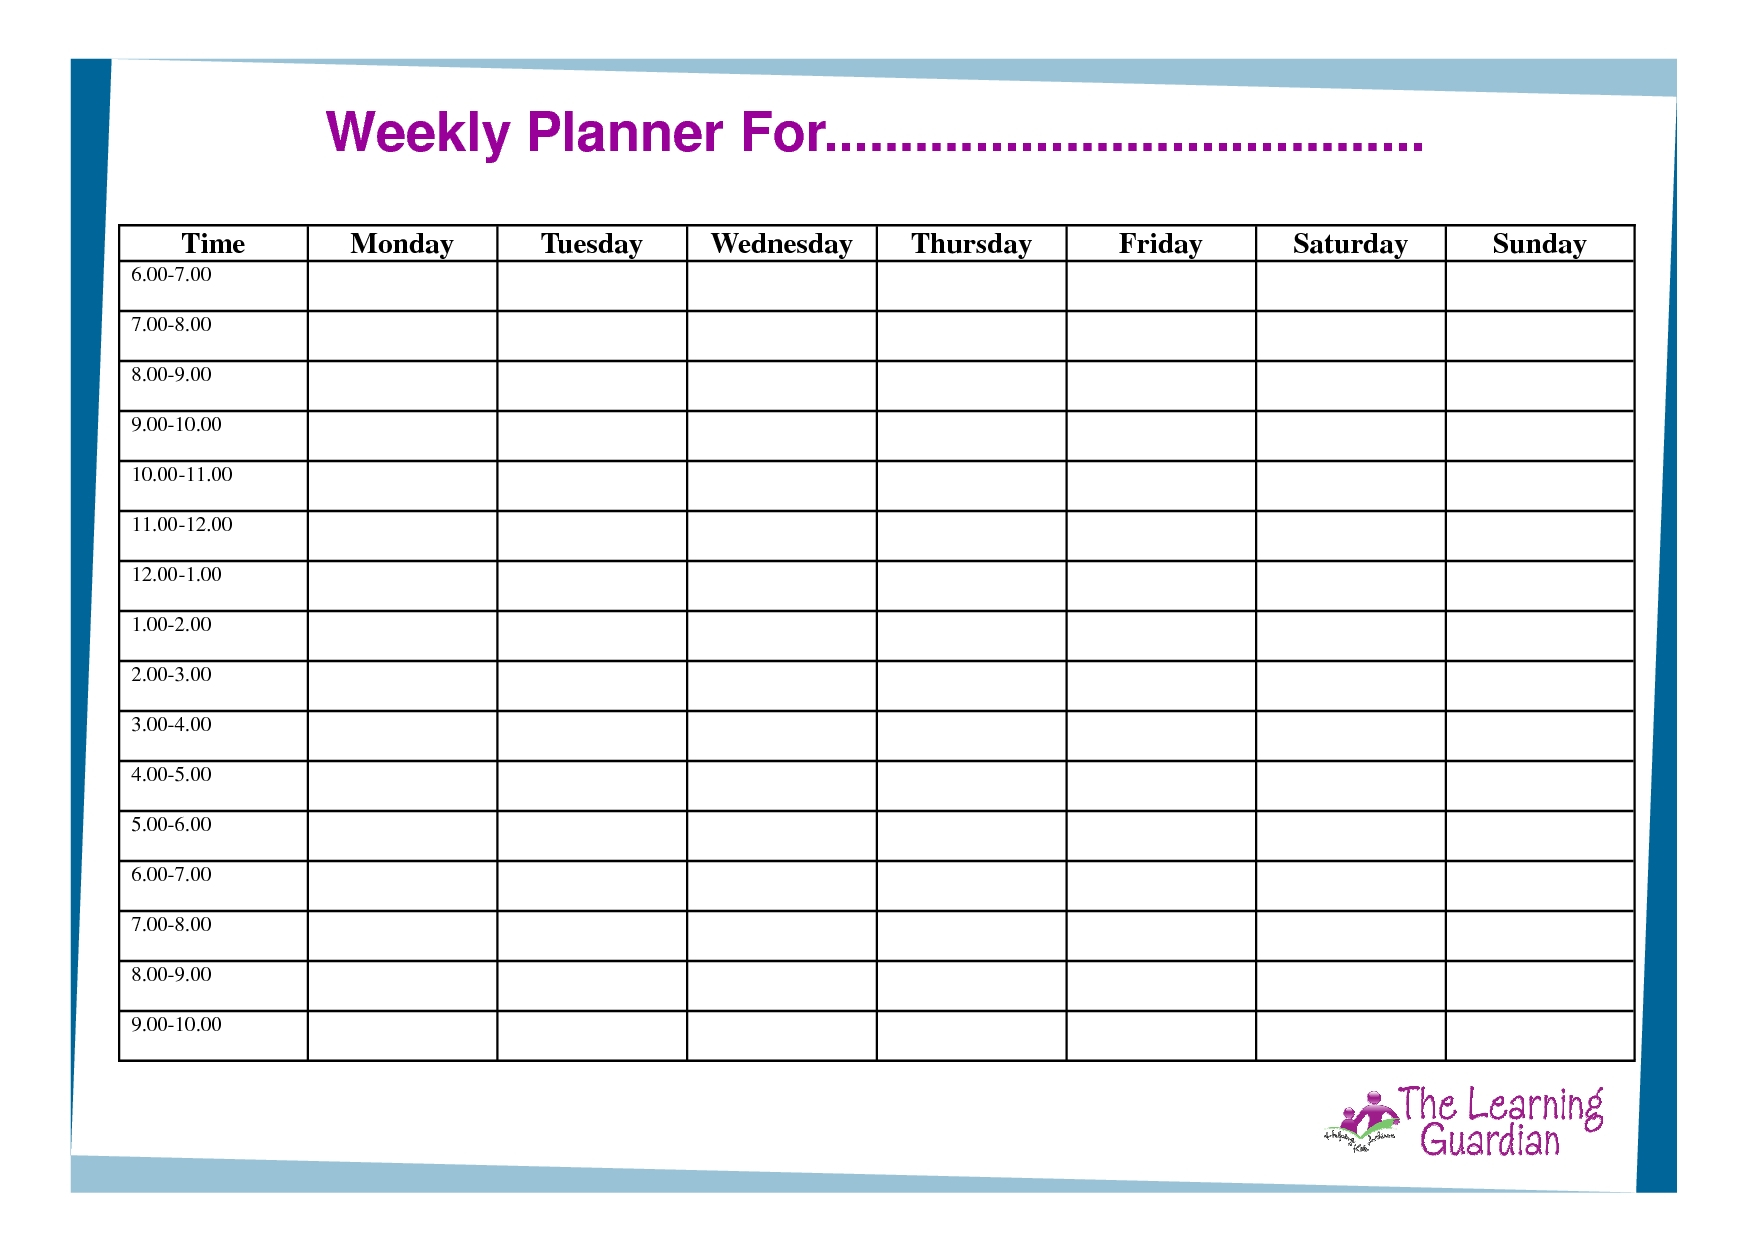 Weekly Planner With Time Slots Word Template - Calendar  Free Excel Calendar Template Time Slots